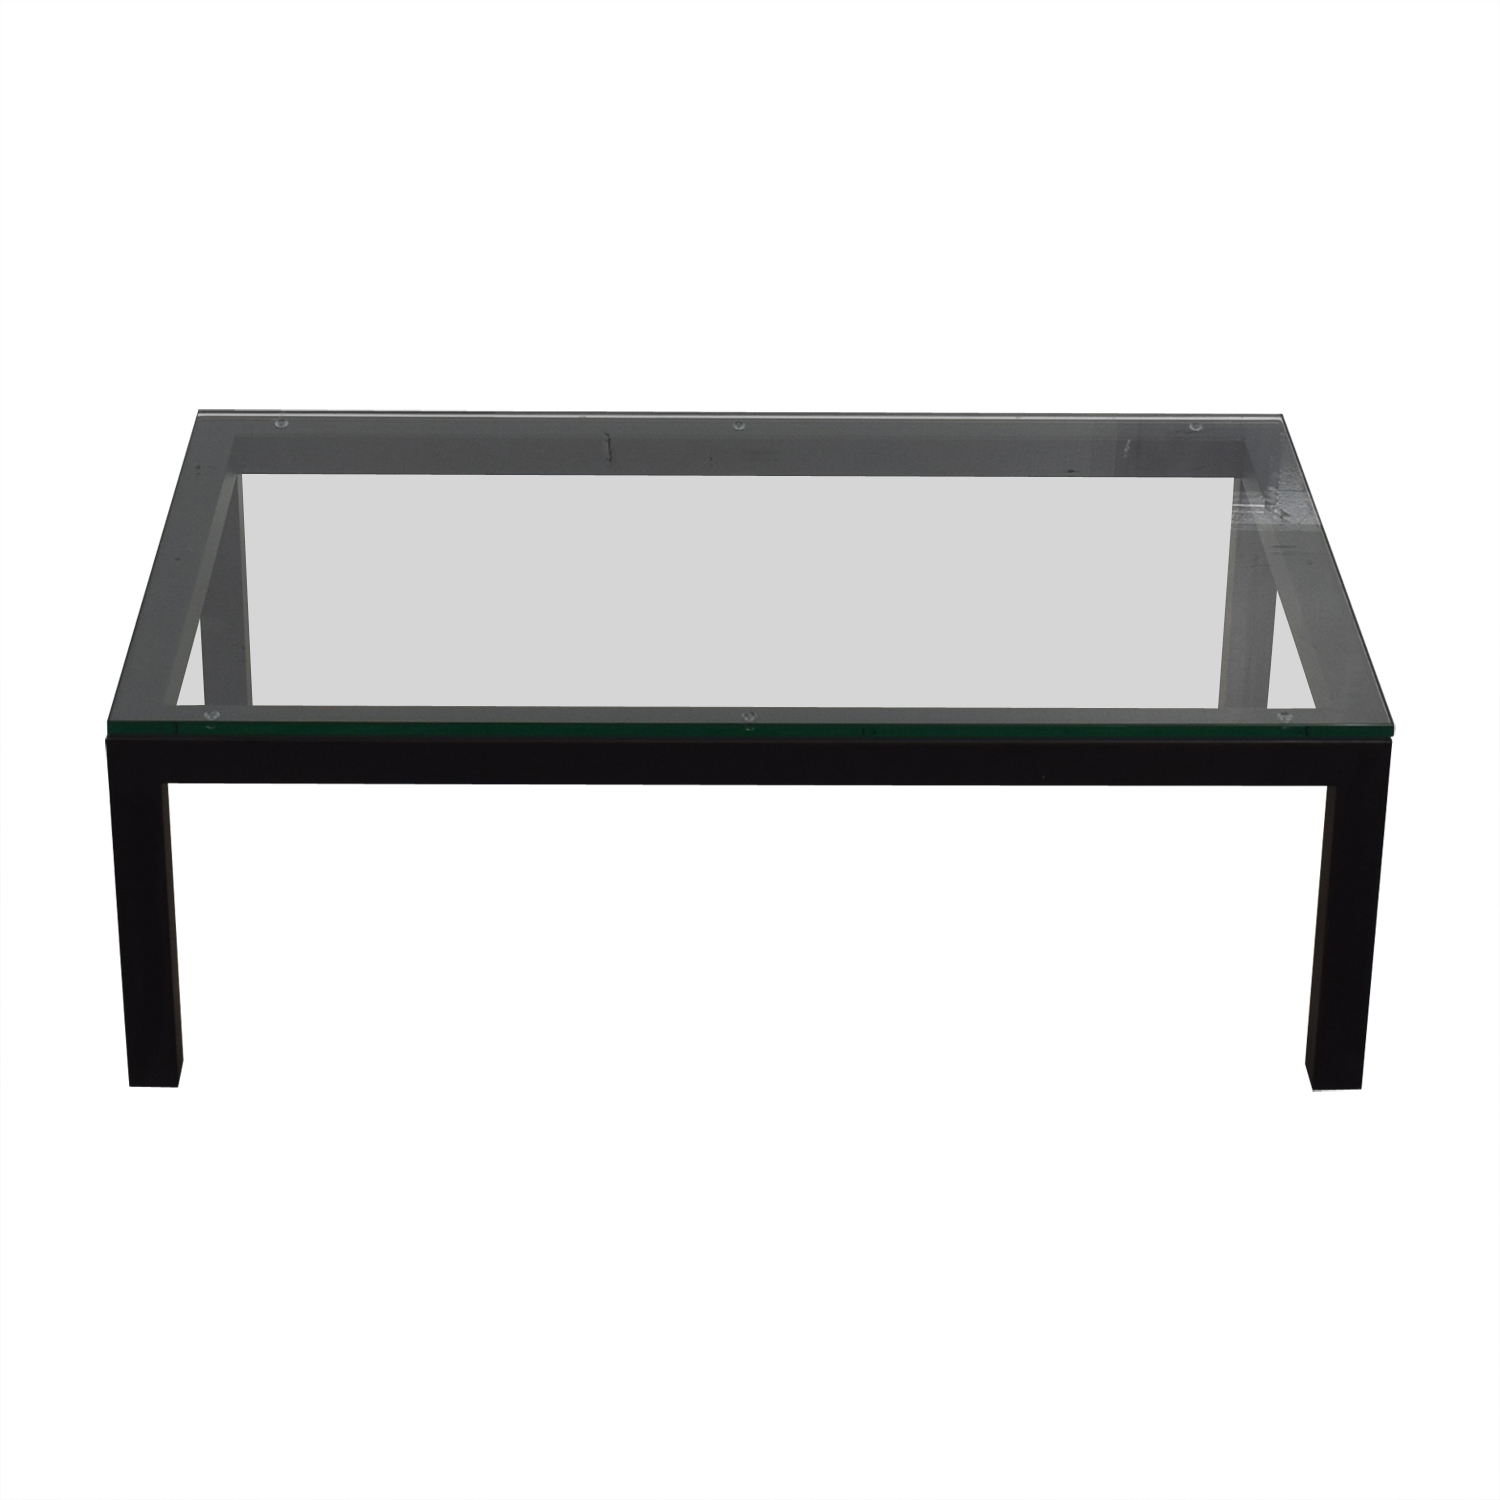 shop Crate & Barrel Crate & Barrel Glass & Black Coffee Table online